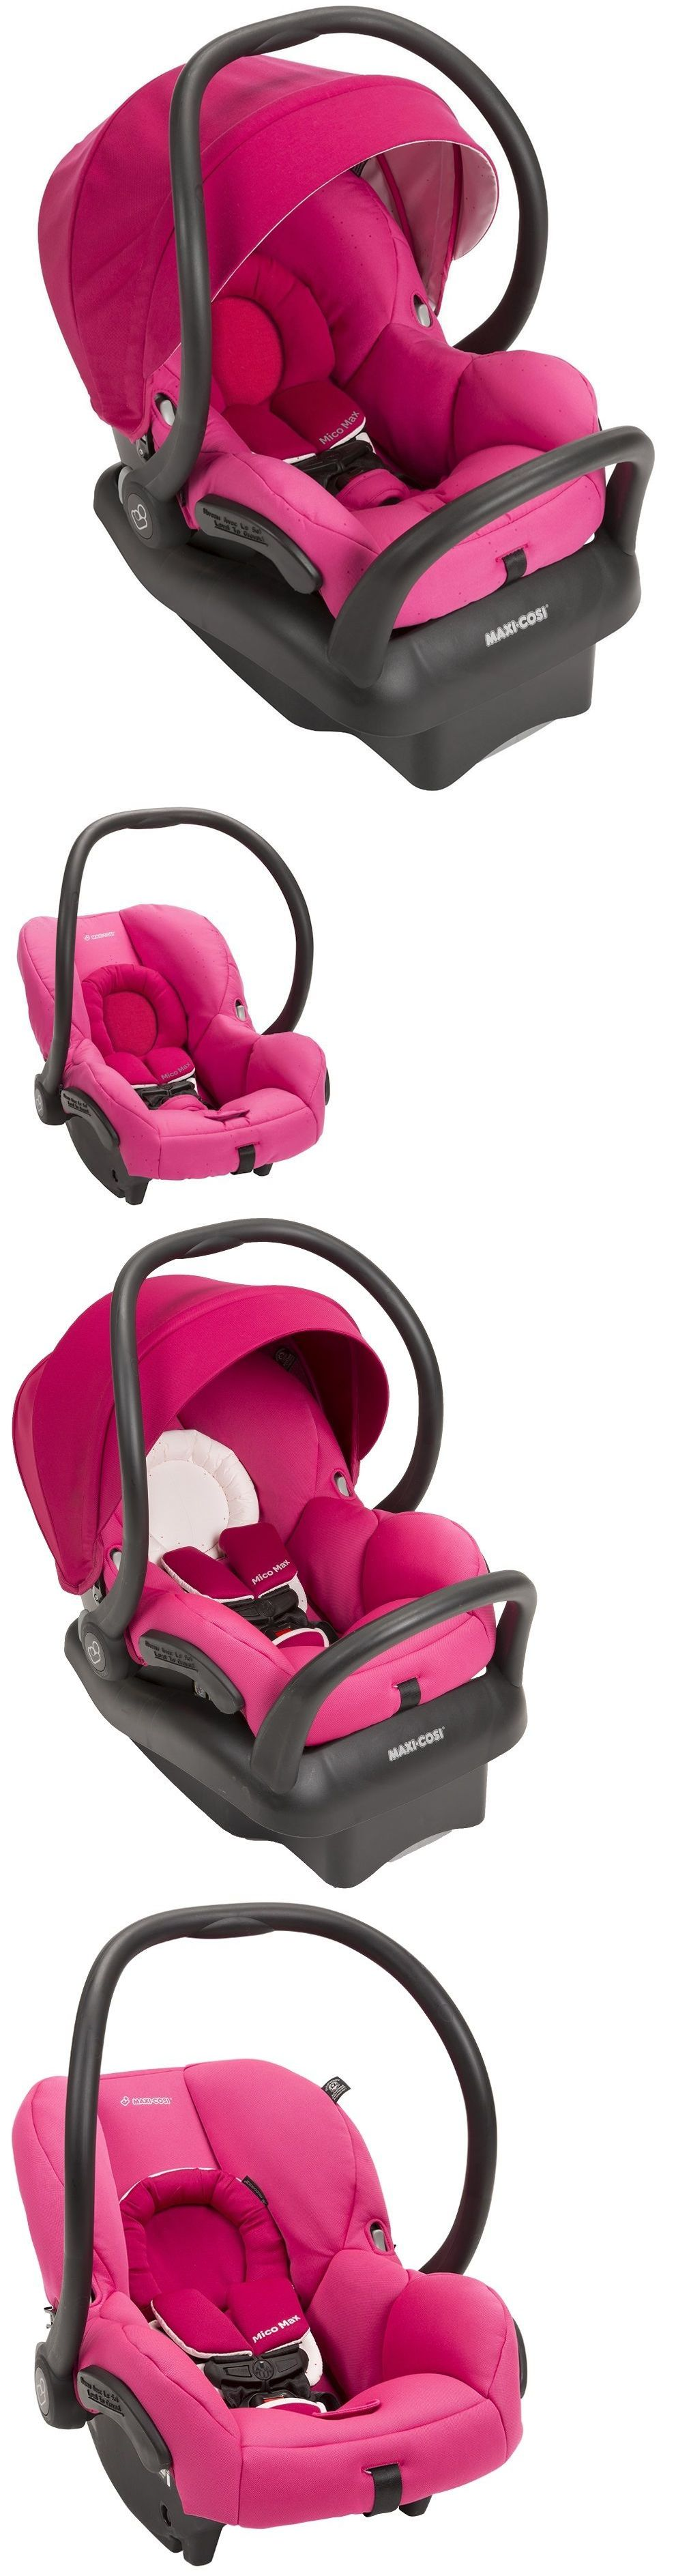 Maxi-Cosi Mico Max 30 Air Protect Infant Baby Car Seat w Base Pink ...